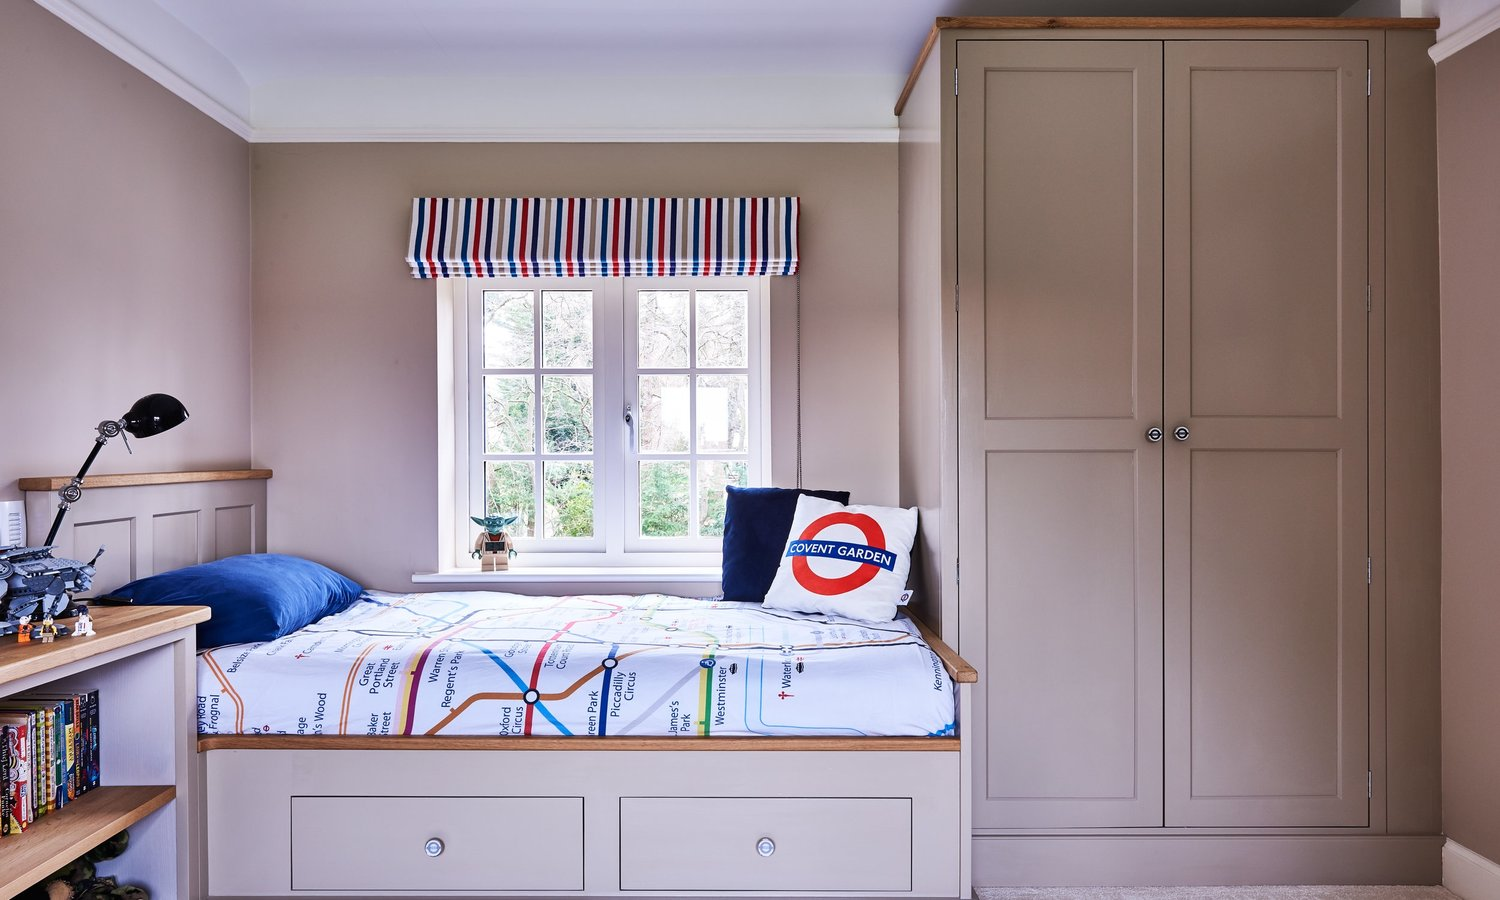 Bespoke furniture - We provide project management and fitting for all our bespoke furniture designs.This could be furniture for a dining room, library or study.